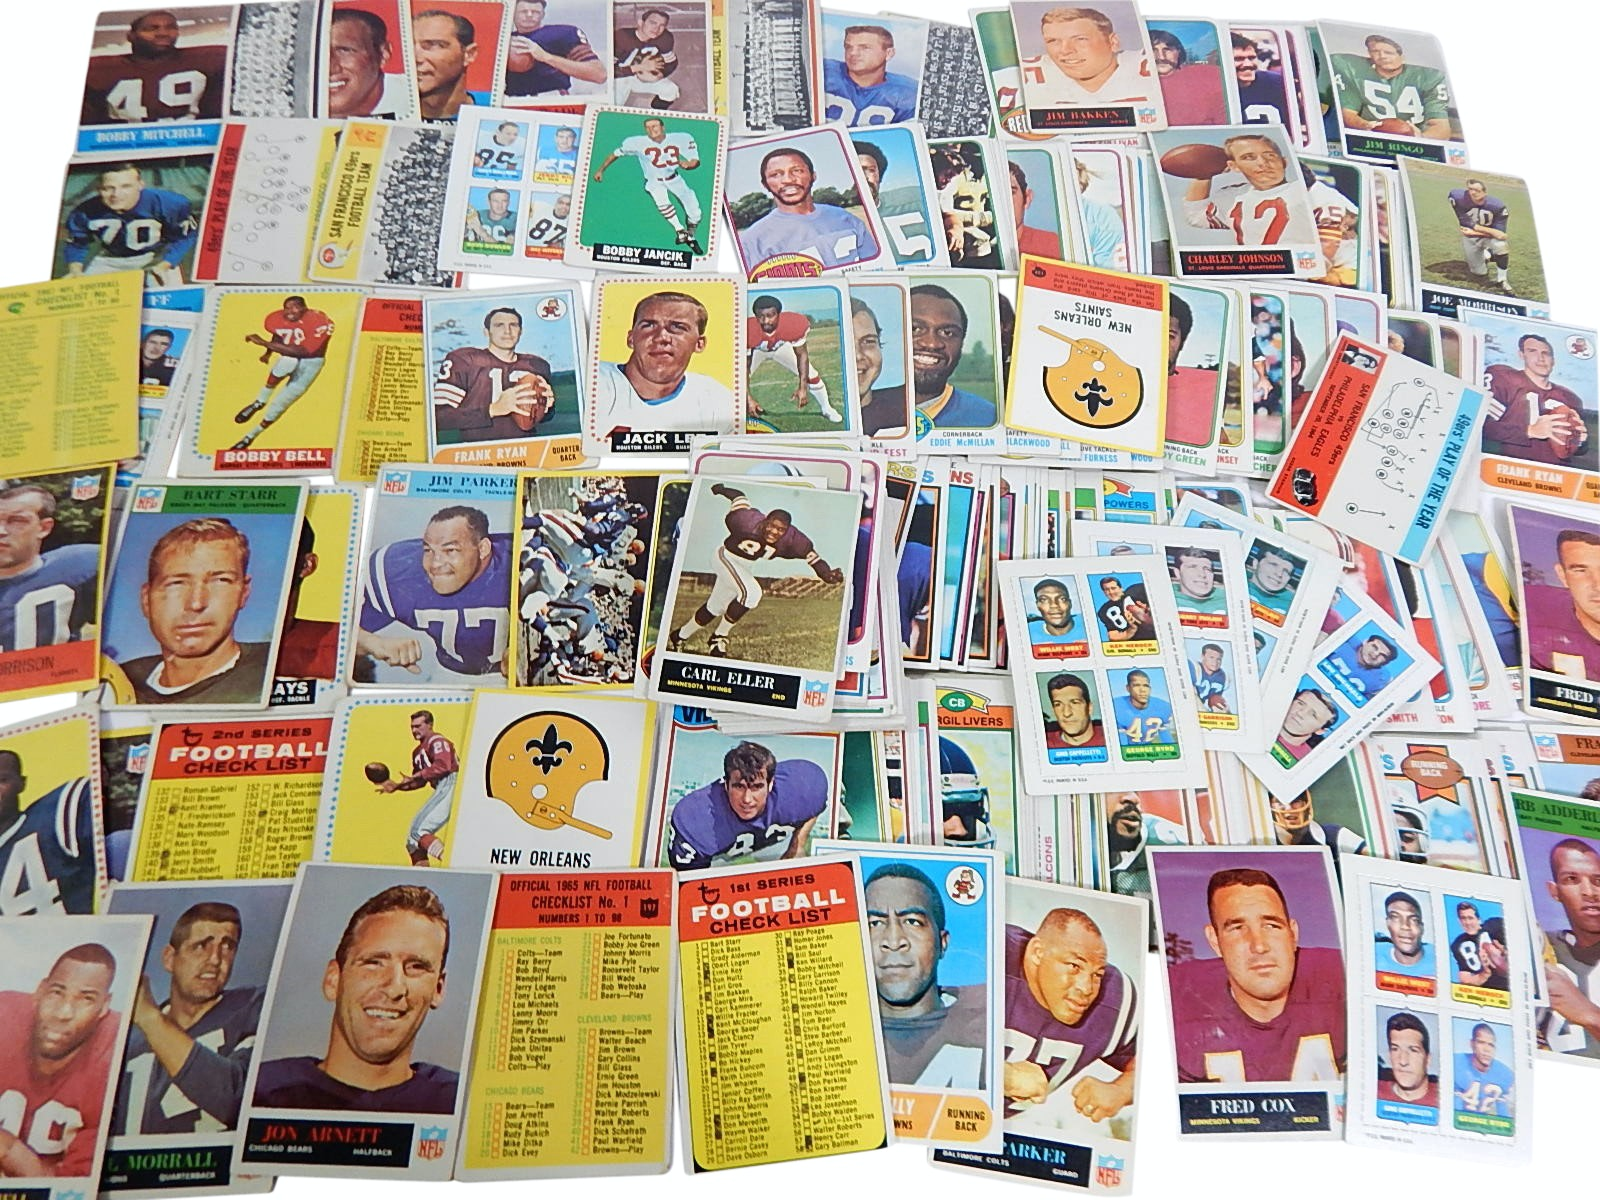 1960s/1970s Topps Football Card Collection with Starr, Mitchell, Eller RC